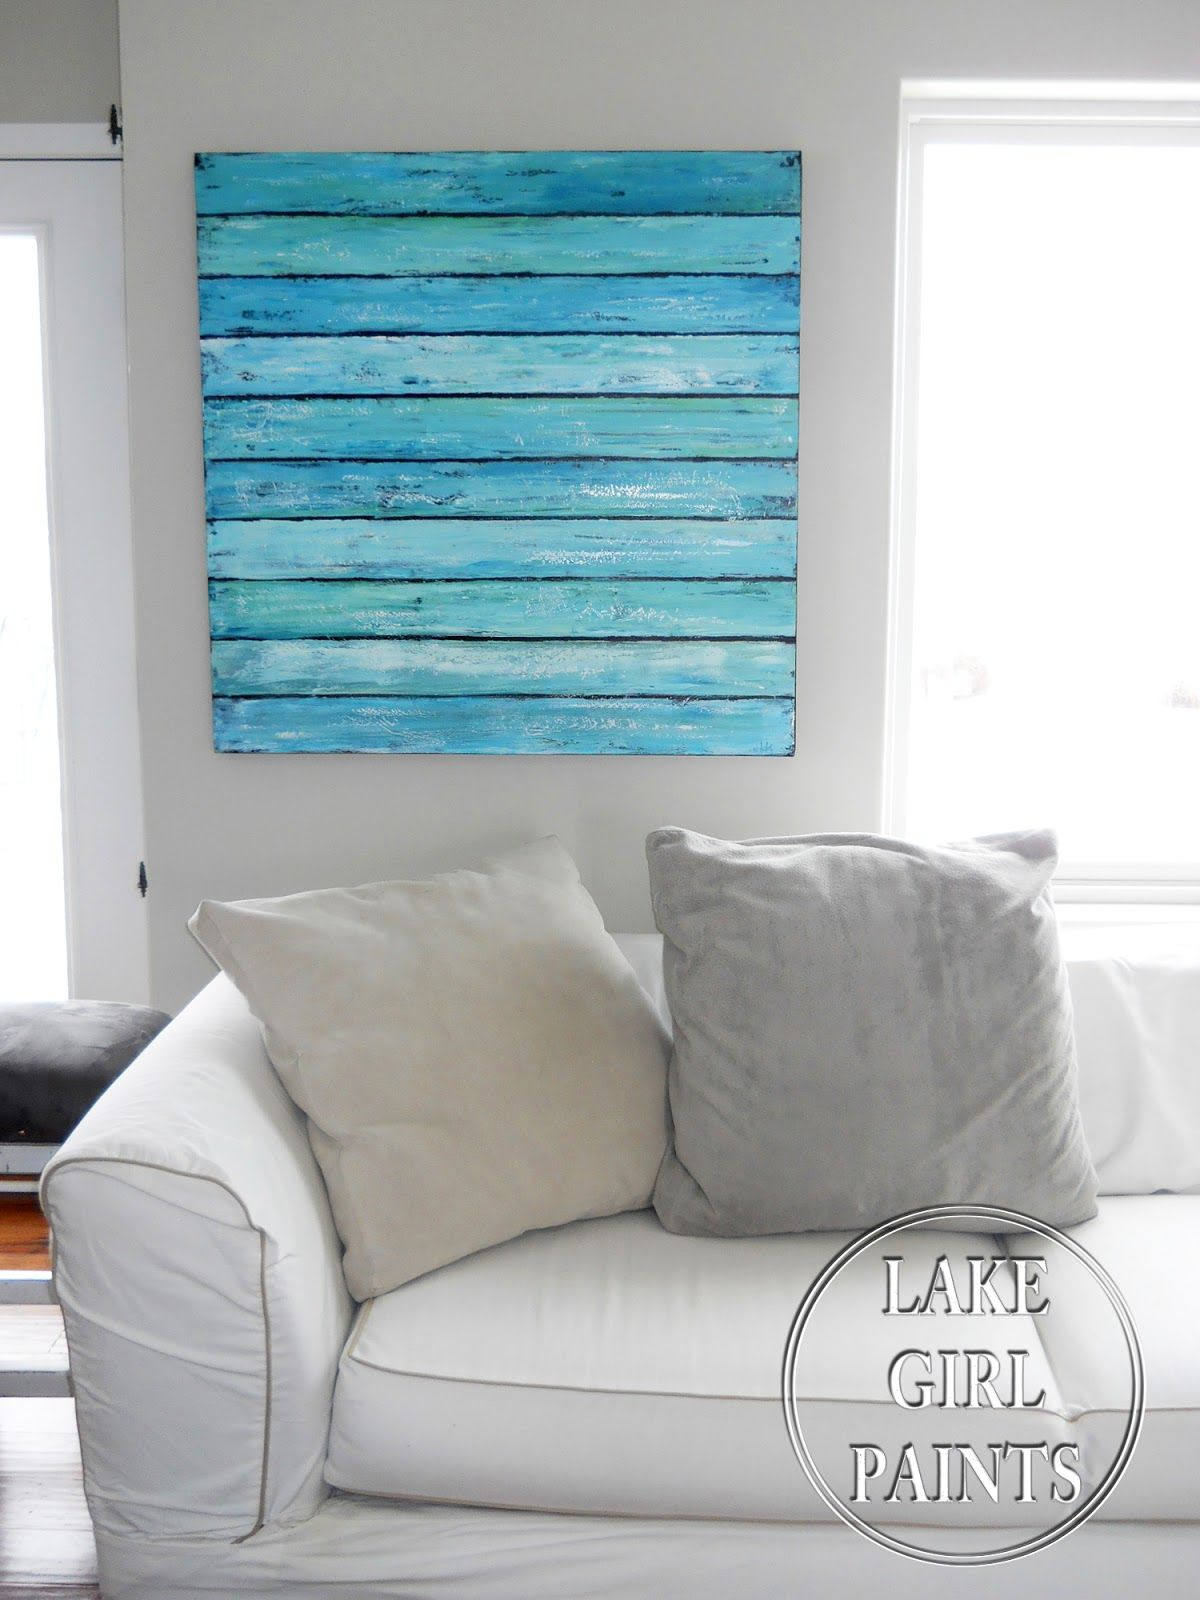 lake girl paints abstract beach art diy canvas art and pictures pinterest schafsk se und. Black Bedroom Furniture Sets. Home Design Ideas